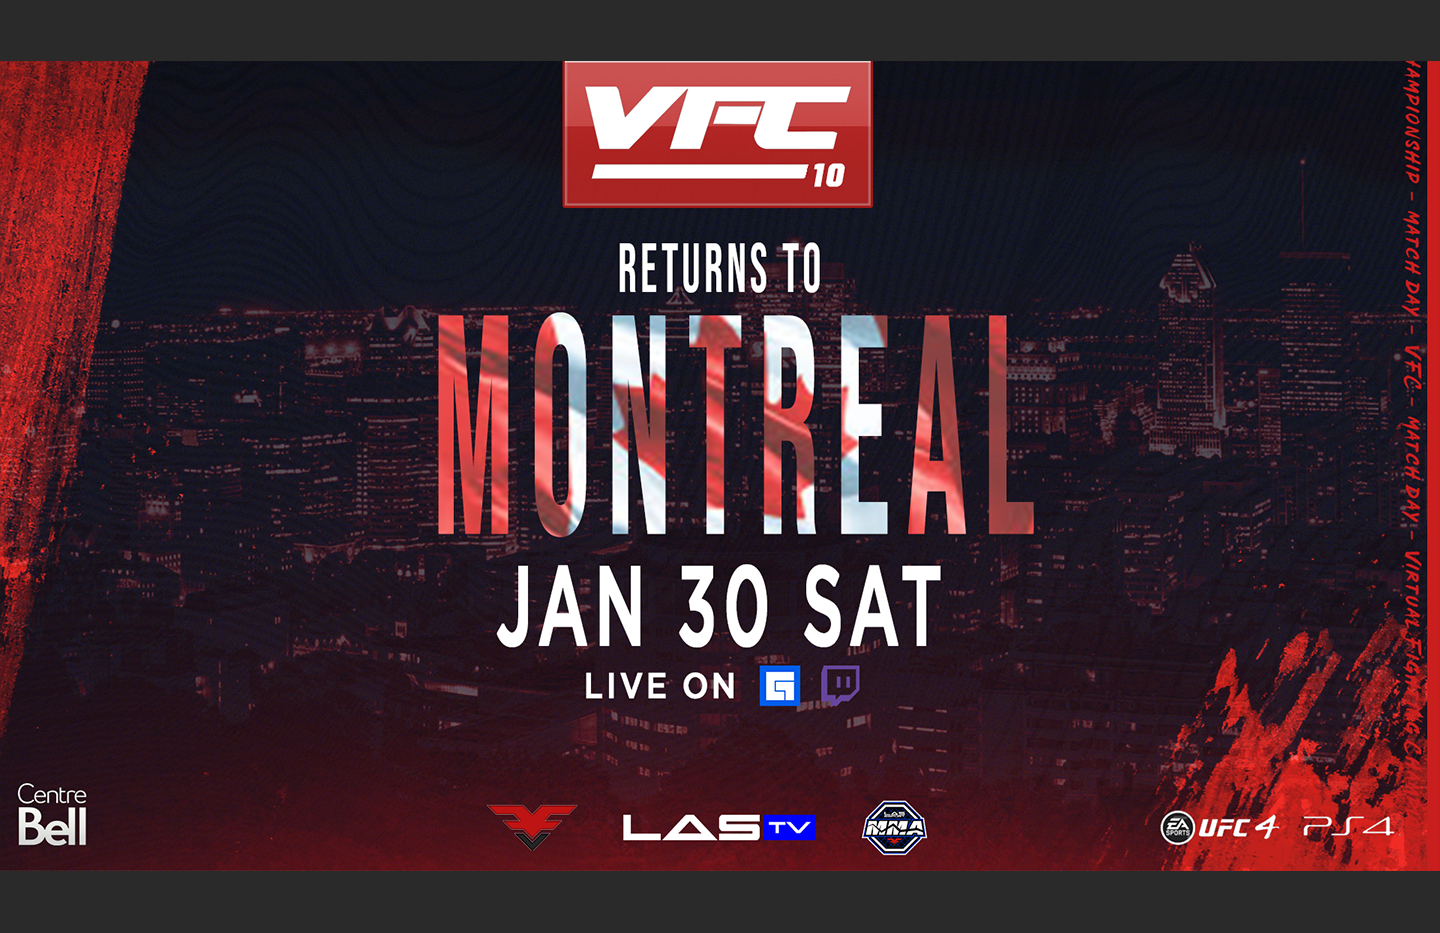 VS.UFC VFC10 (site).png